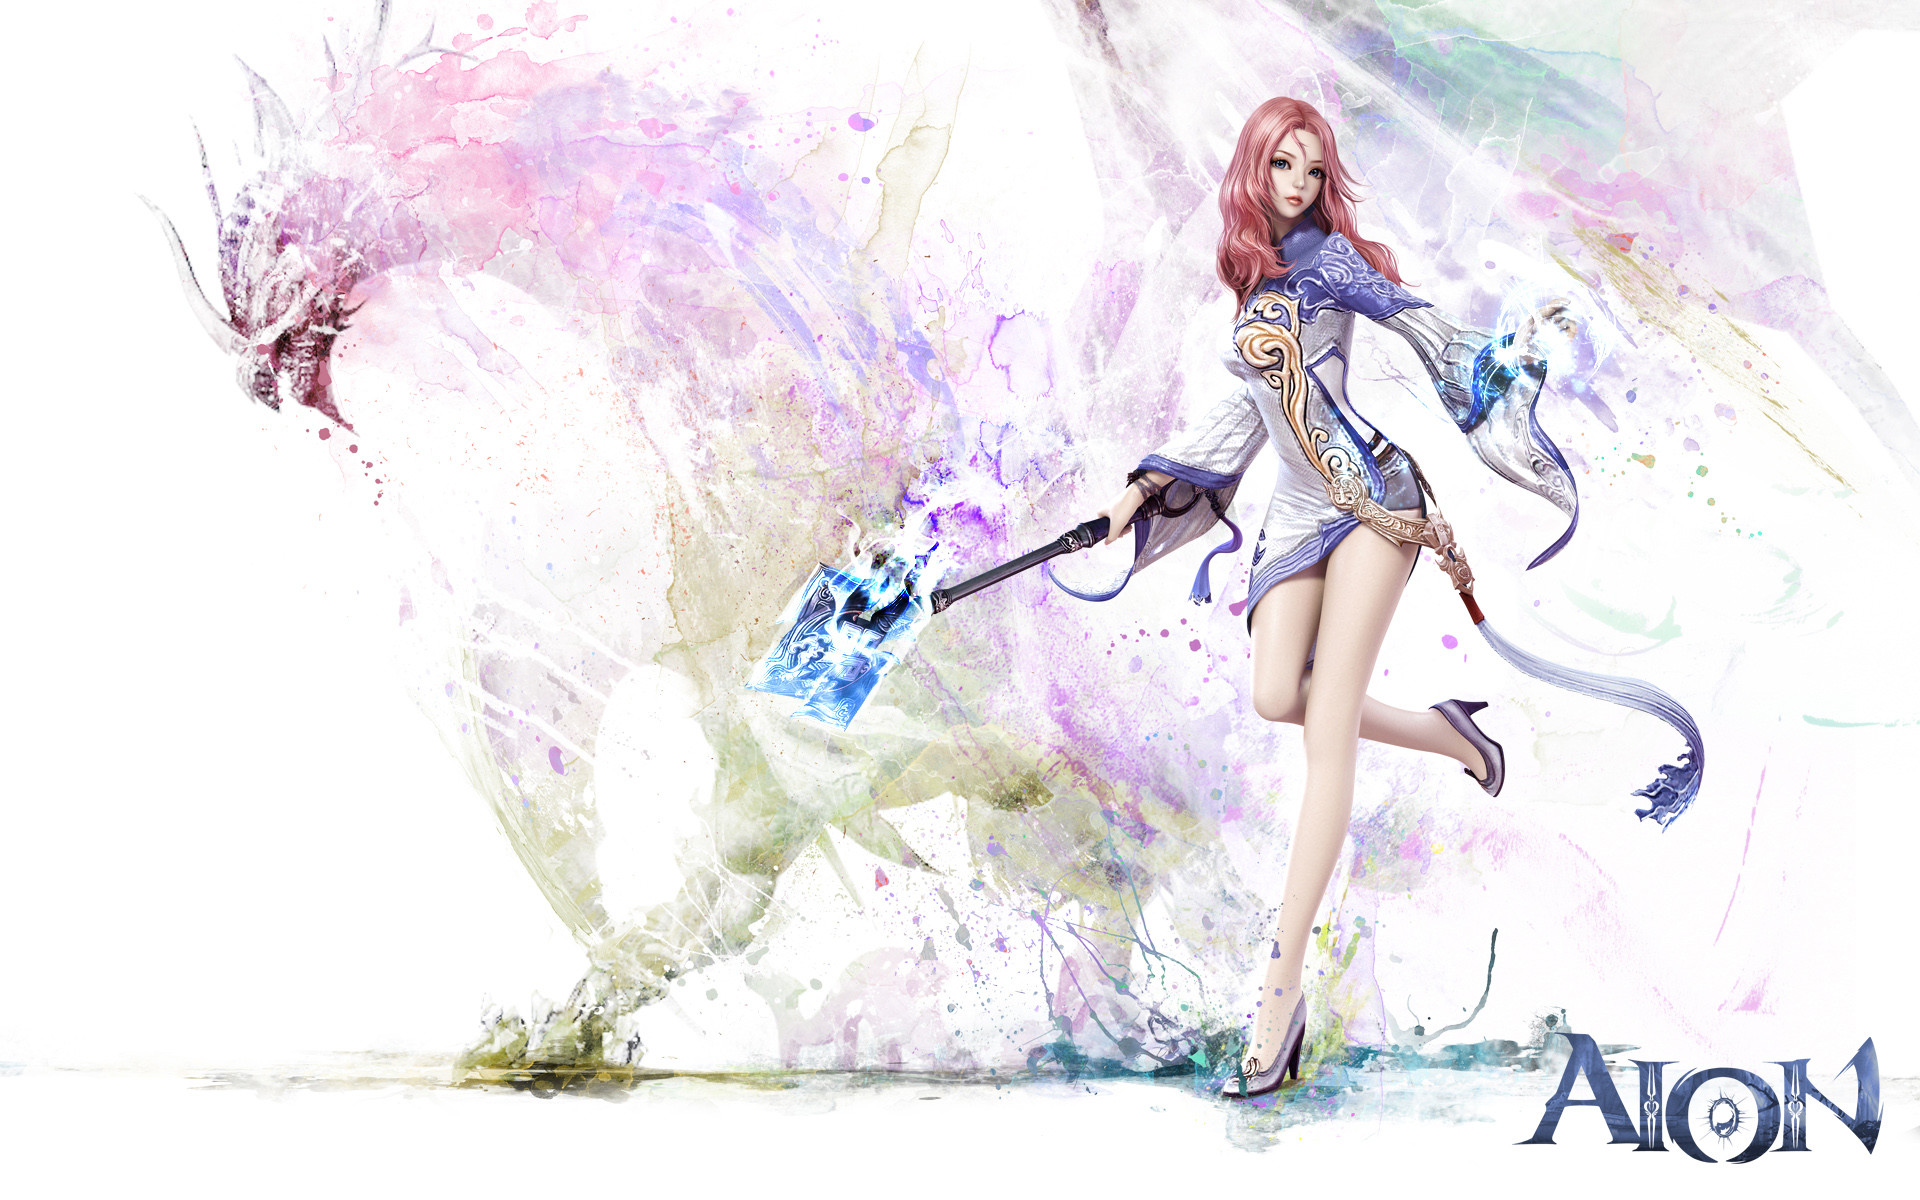 Res: 1920x1200, Aion Game Girl Wallpapers HD Wallpapers